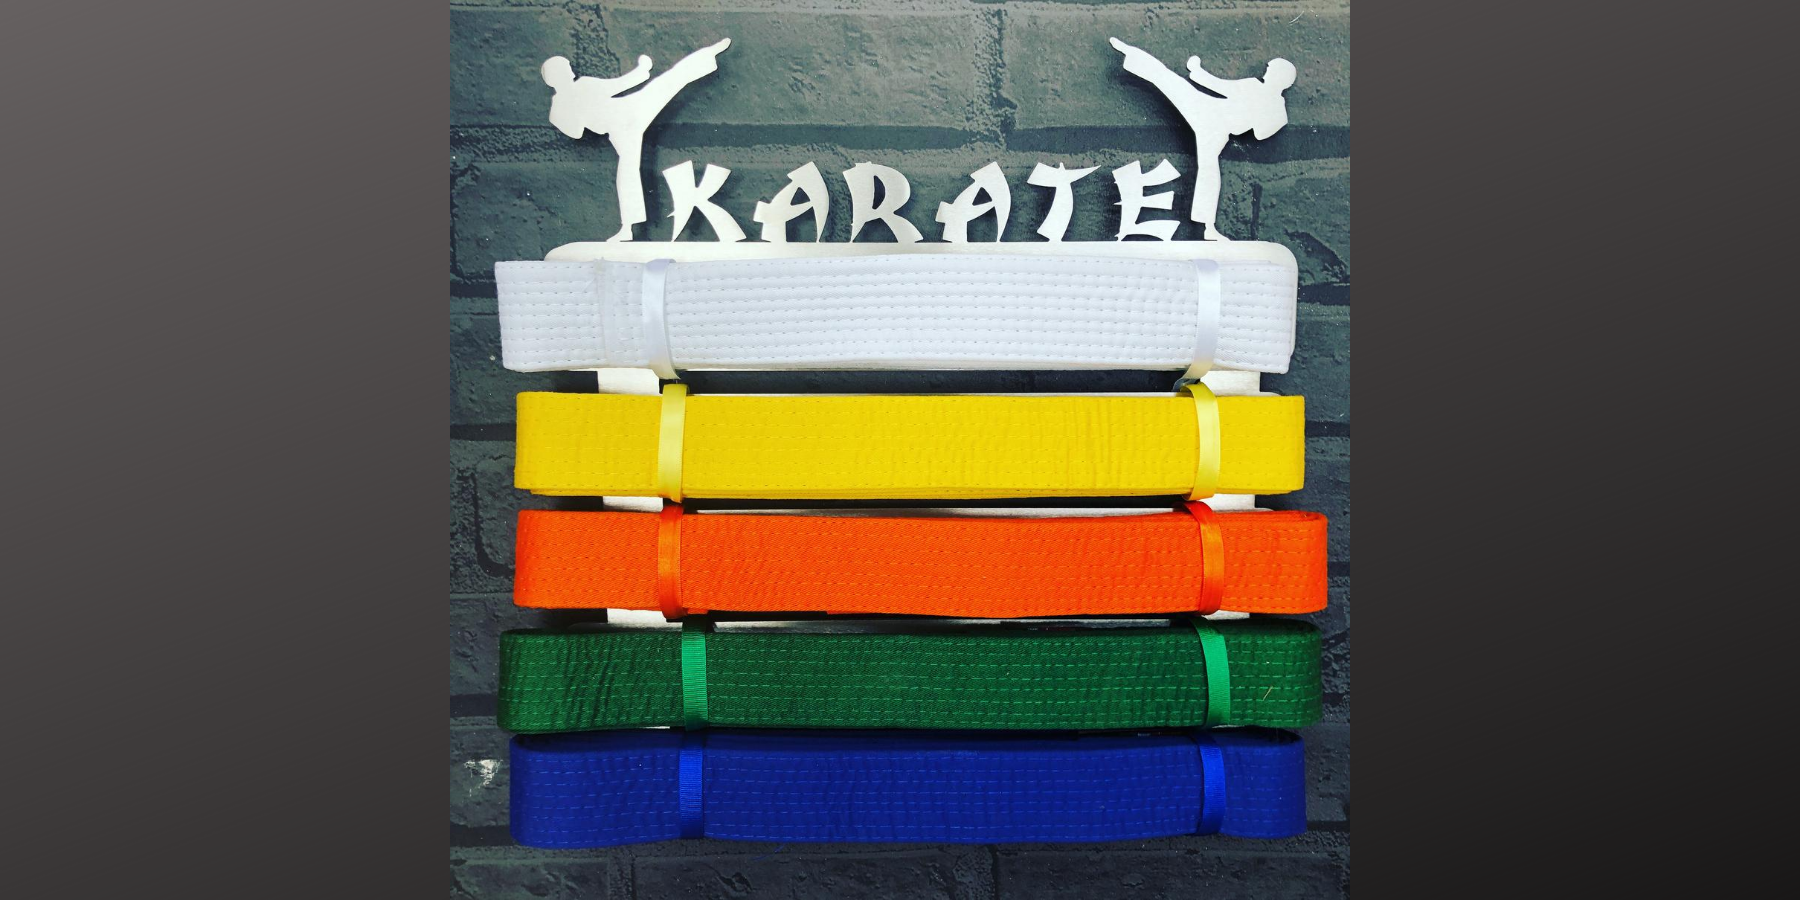 =Karate Belt Display from The Runners Wall